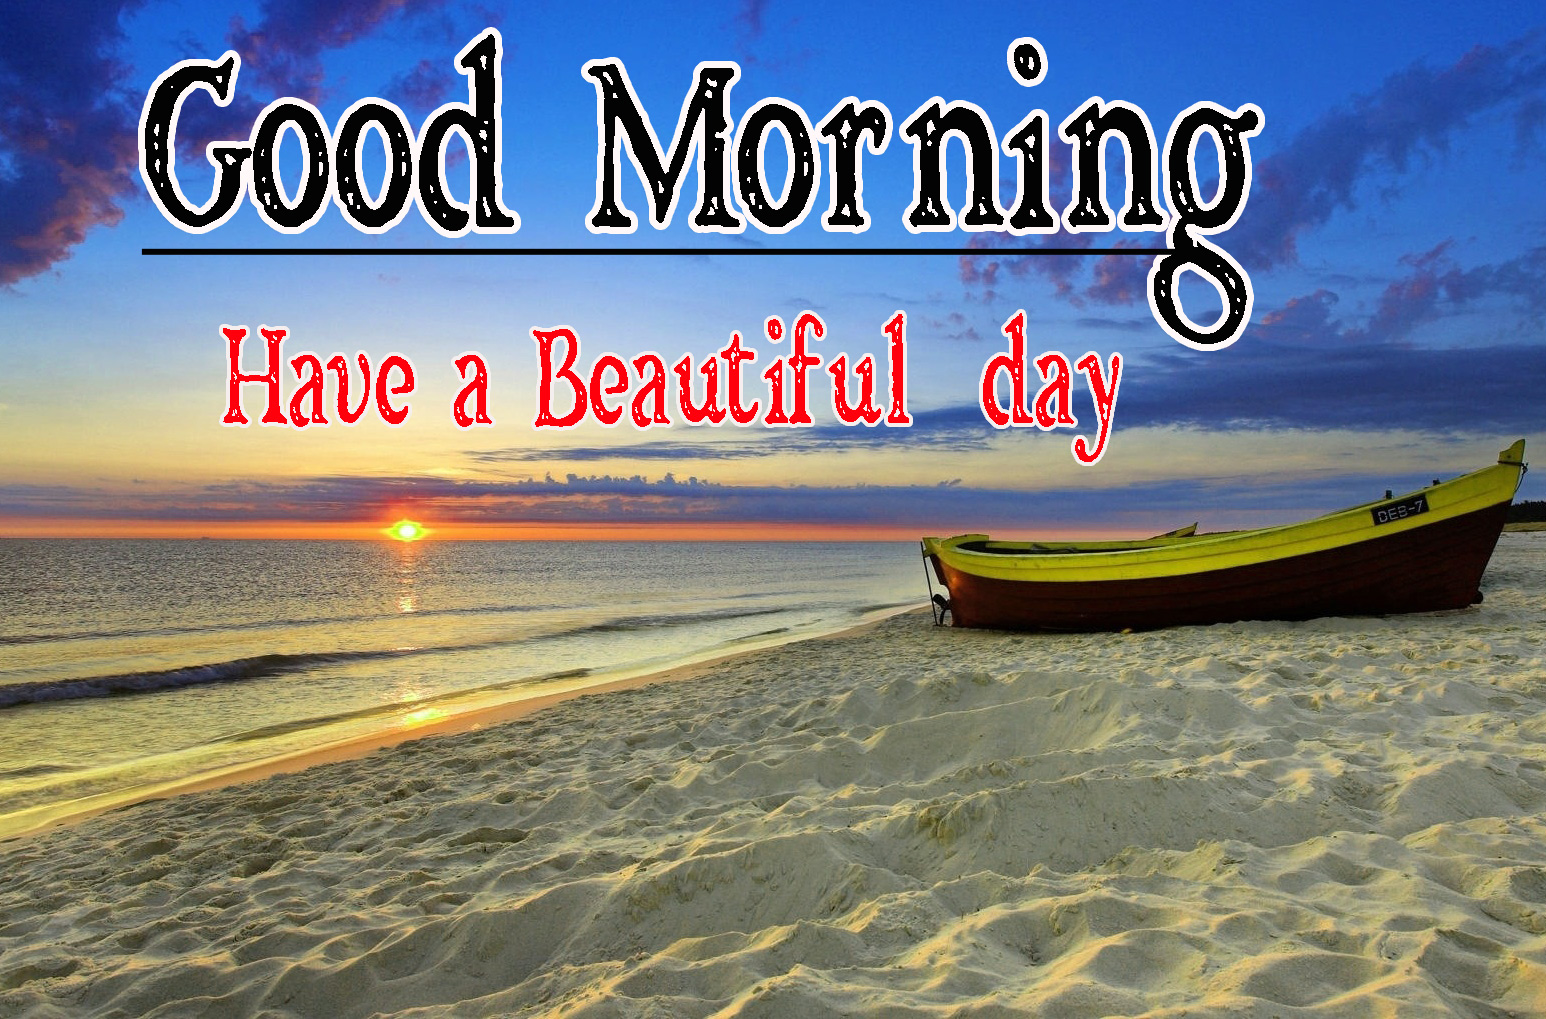 1080p Very Good Morning Images Wallpaper Free Download